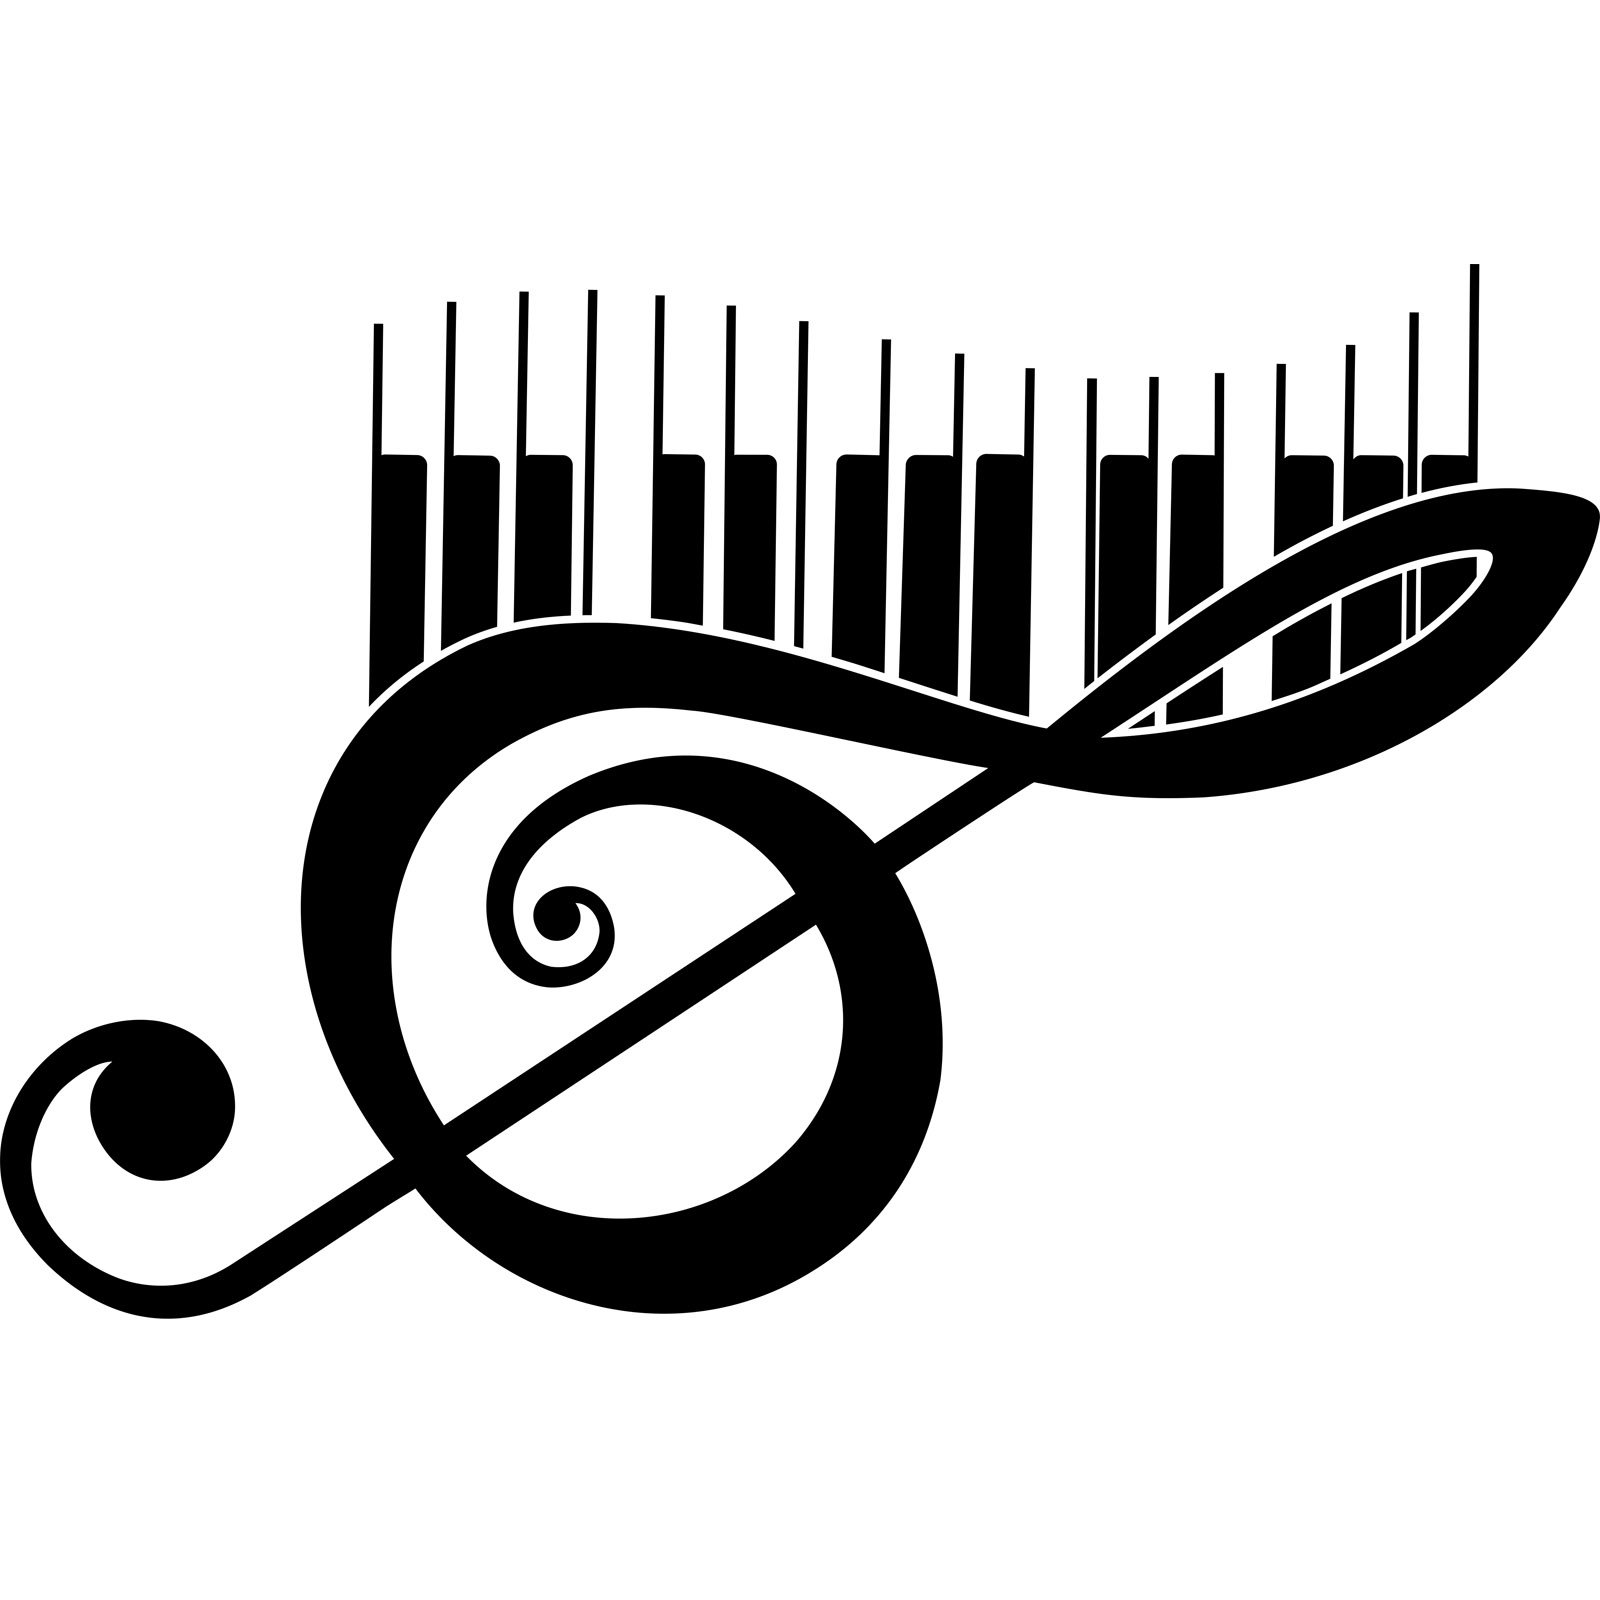 Treble Clef And Piano Keys Musical Wall Sticker World Of